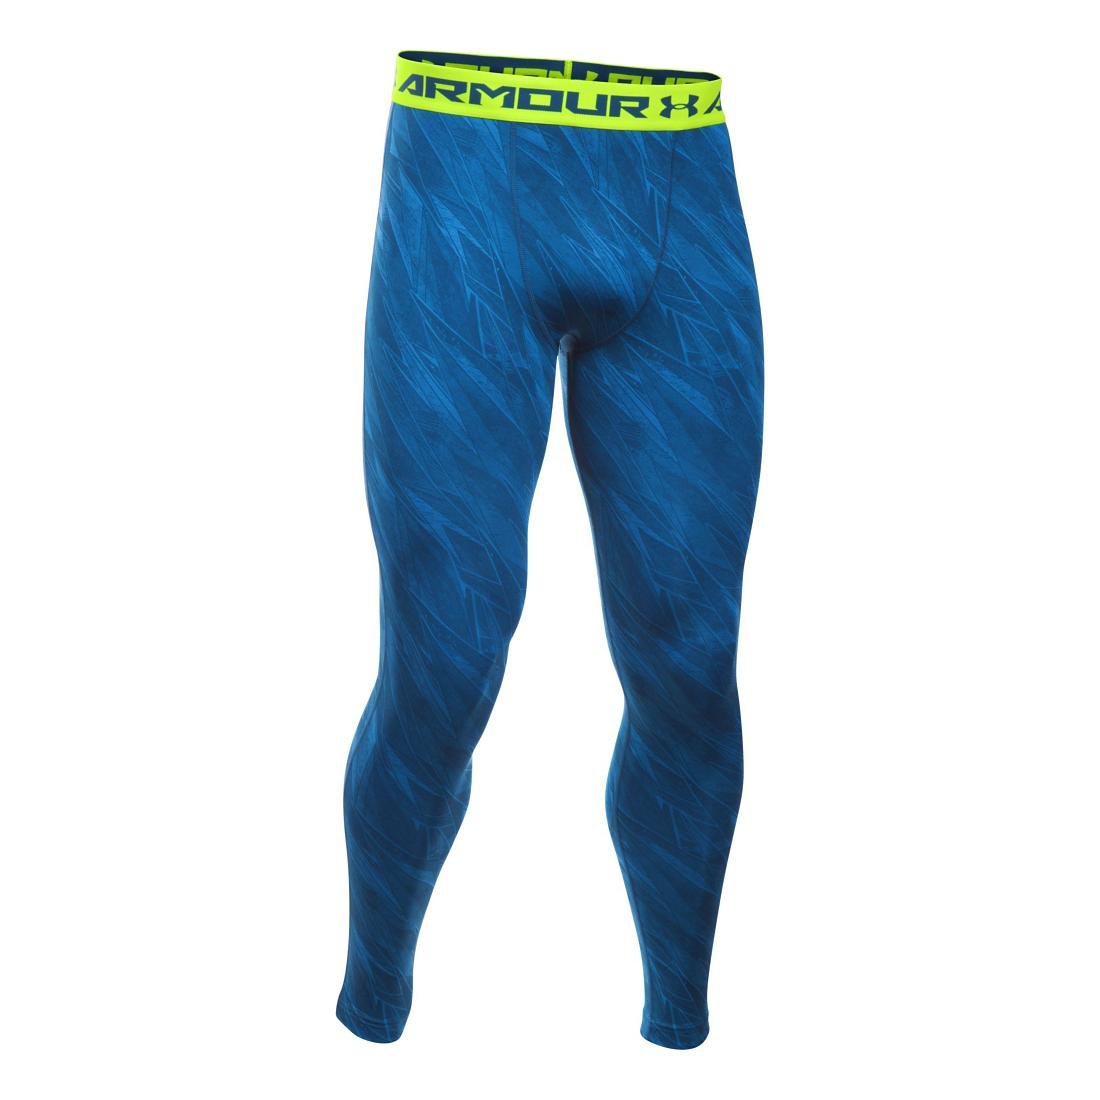 Under Armour Armour Hg Legging Printed, Leggings Uomo 1258897